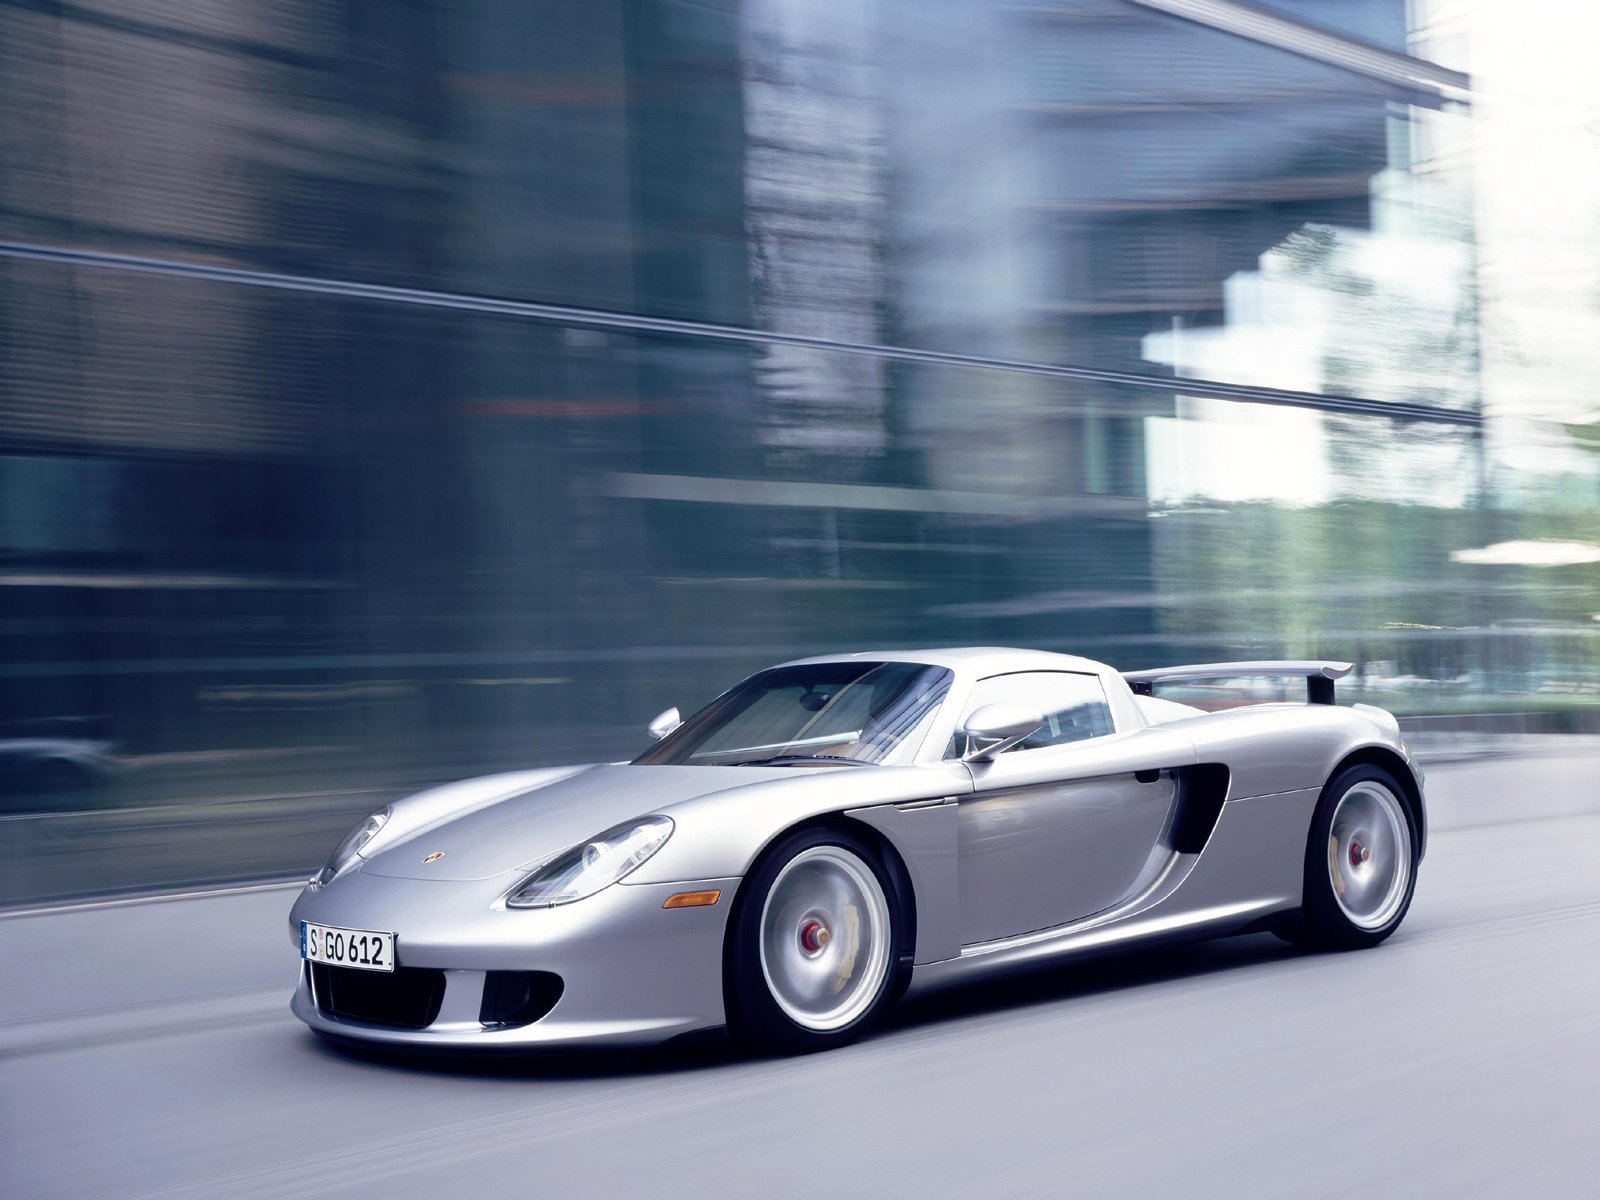 Porsche Carrera GT Widescreen